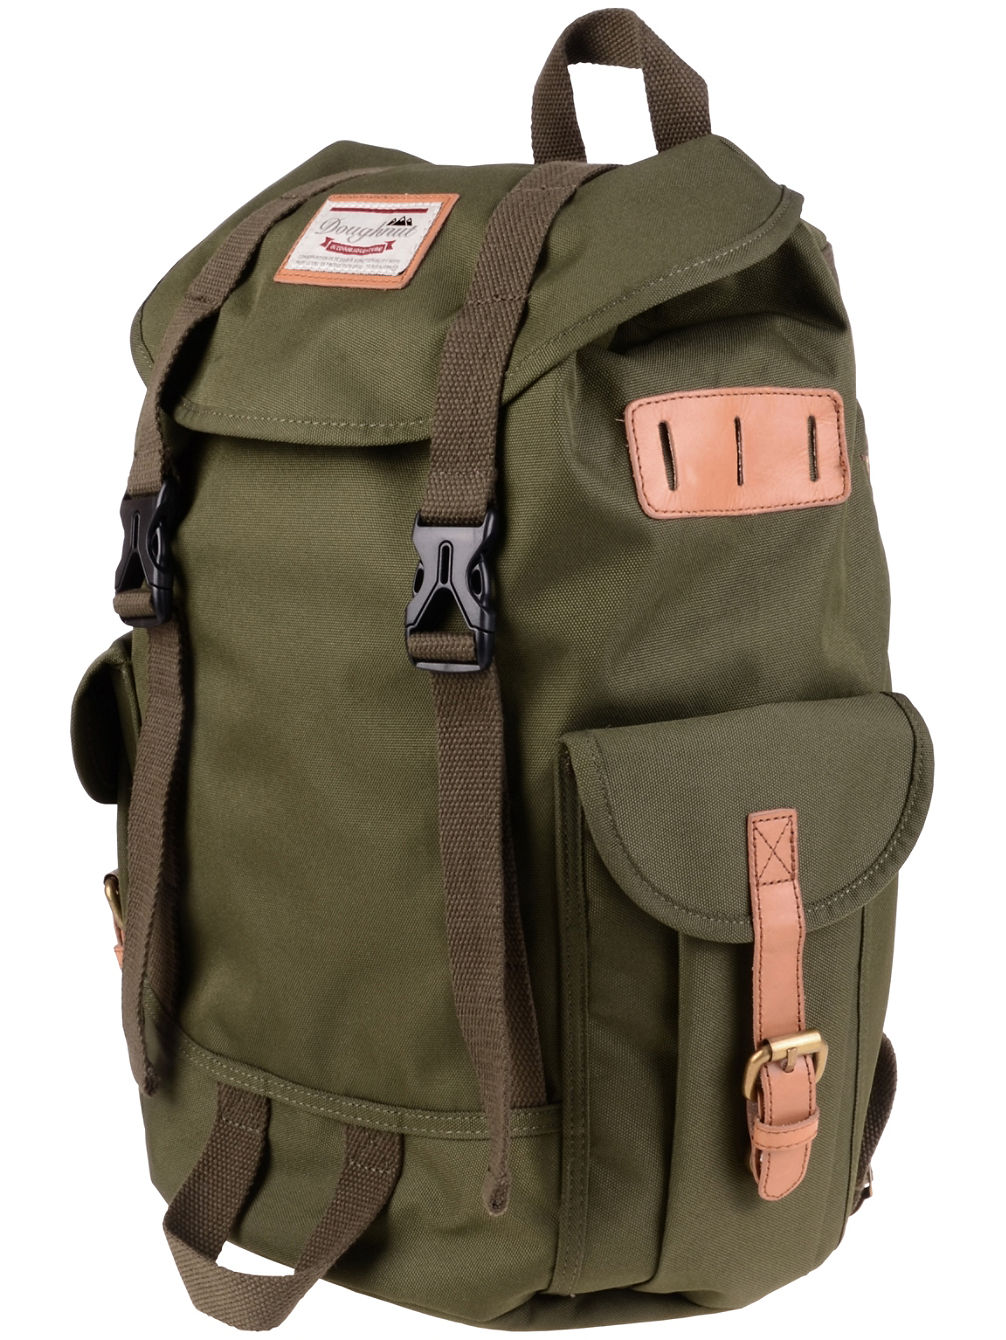 Woodland Small Backpack